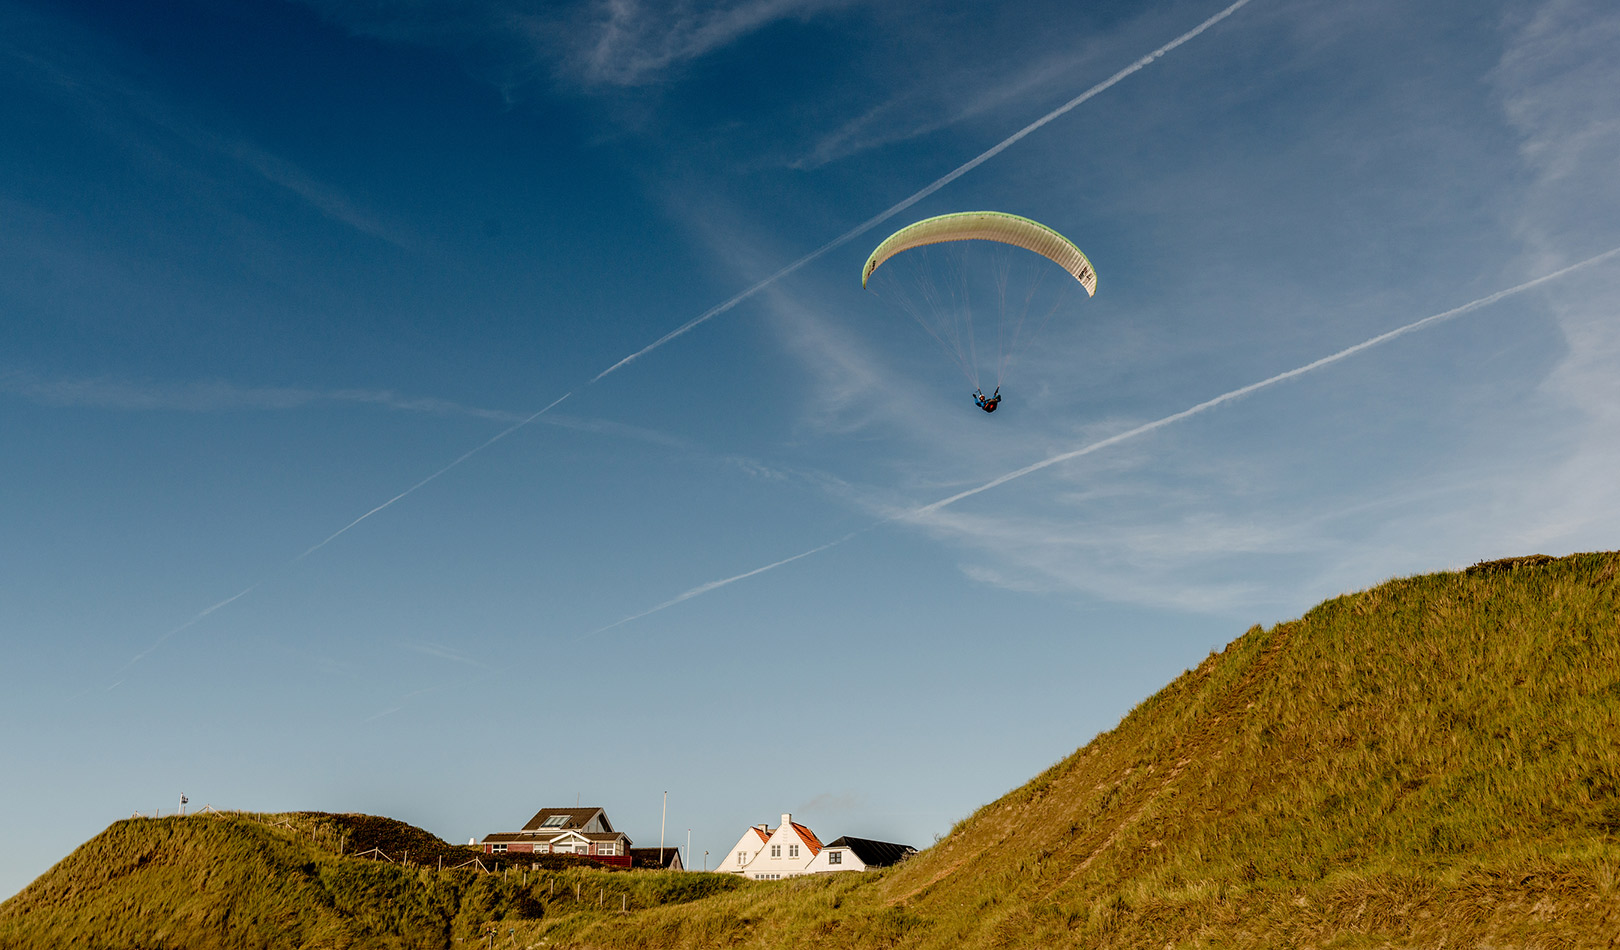 Paragliding in the landscape of Jutland, Denmark.